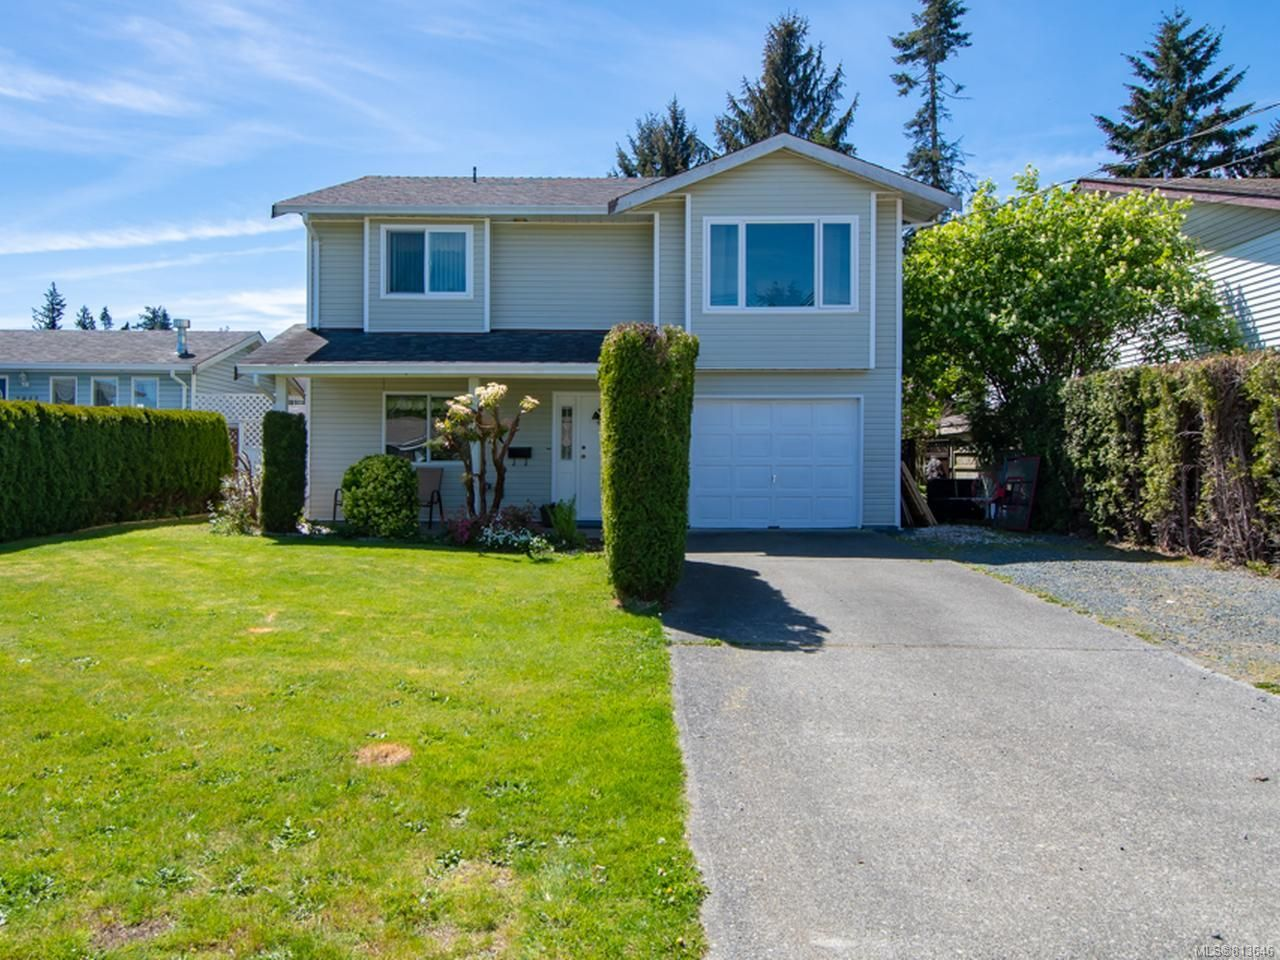 Main Photo: 2822 Fairmile Rd in CAMPBELL RIVER: CR Willow Point House for sale (Campbell River)  : MLS®# 813646